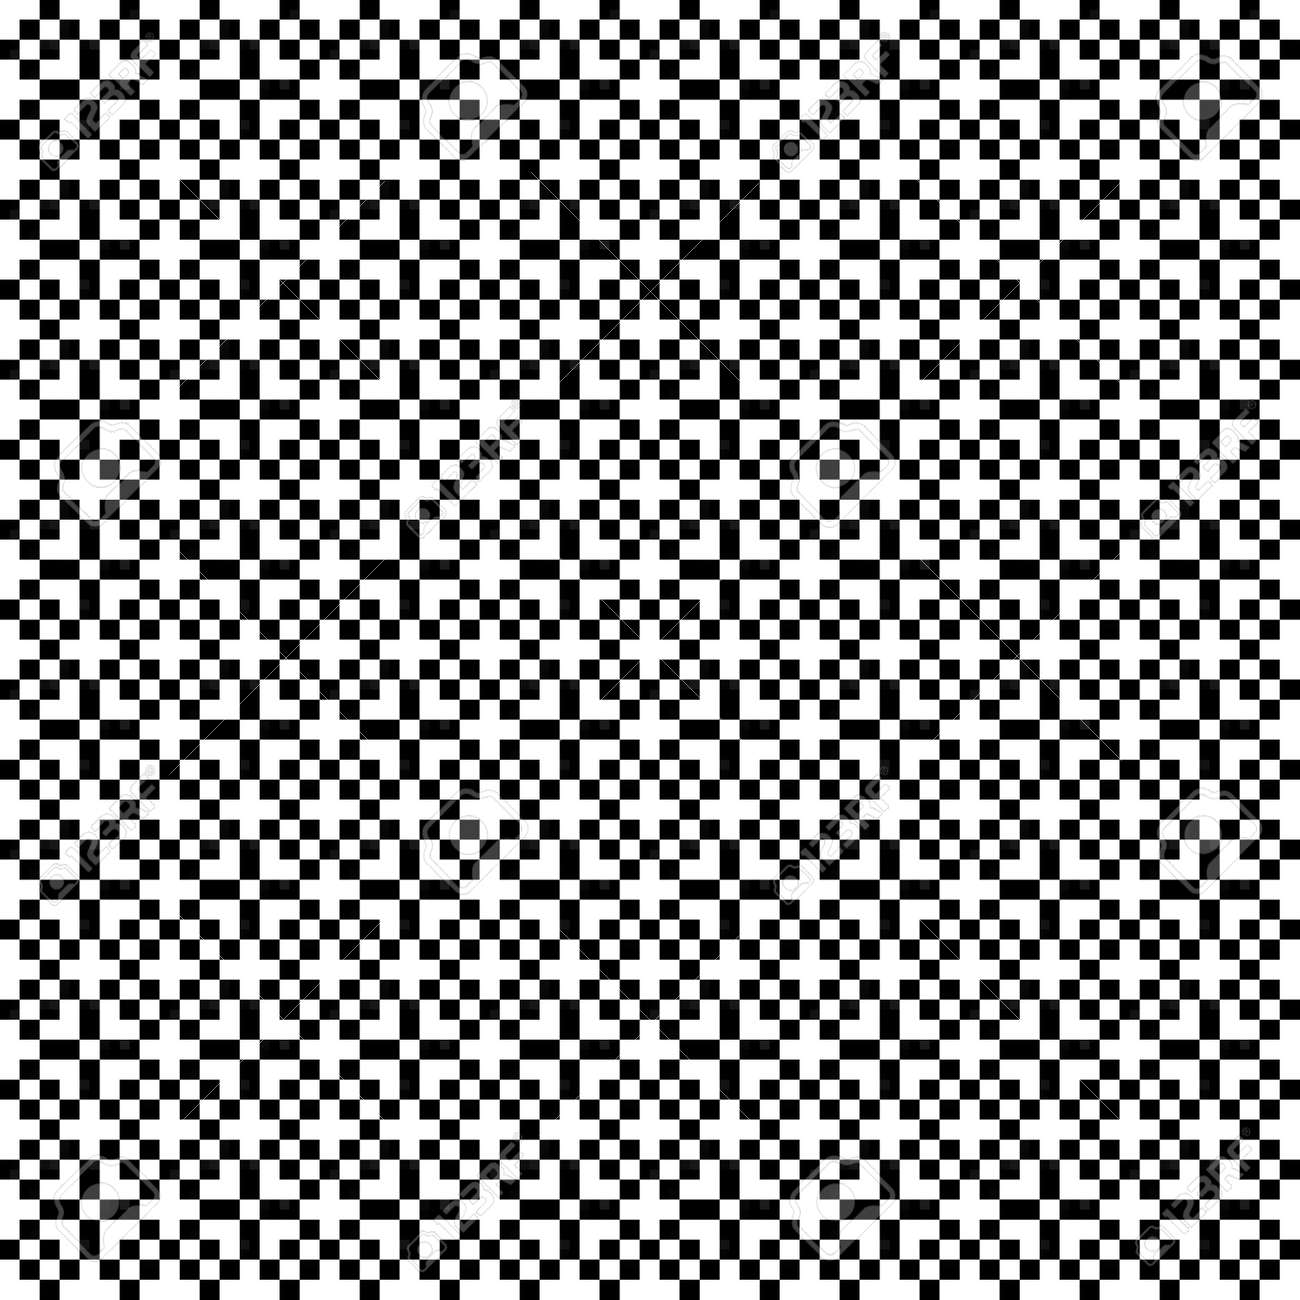 Illustration of a black and white pixel mosaic pattern - 166284623